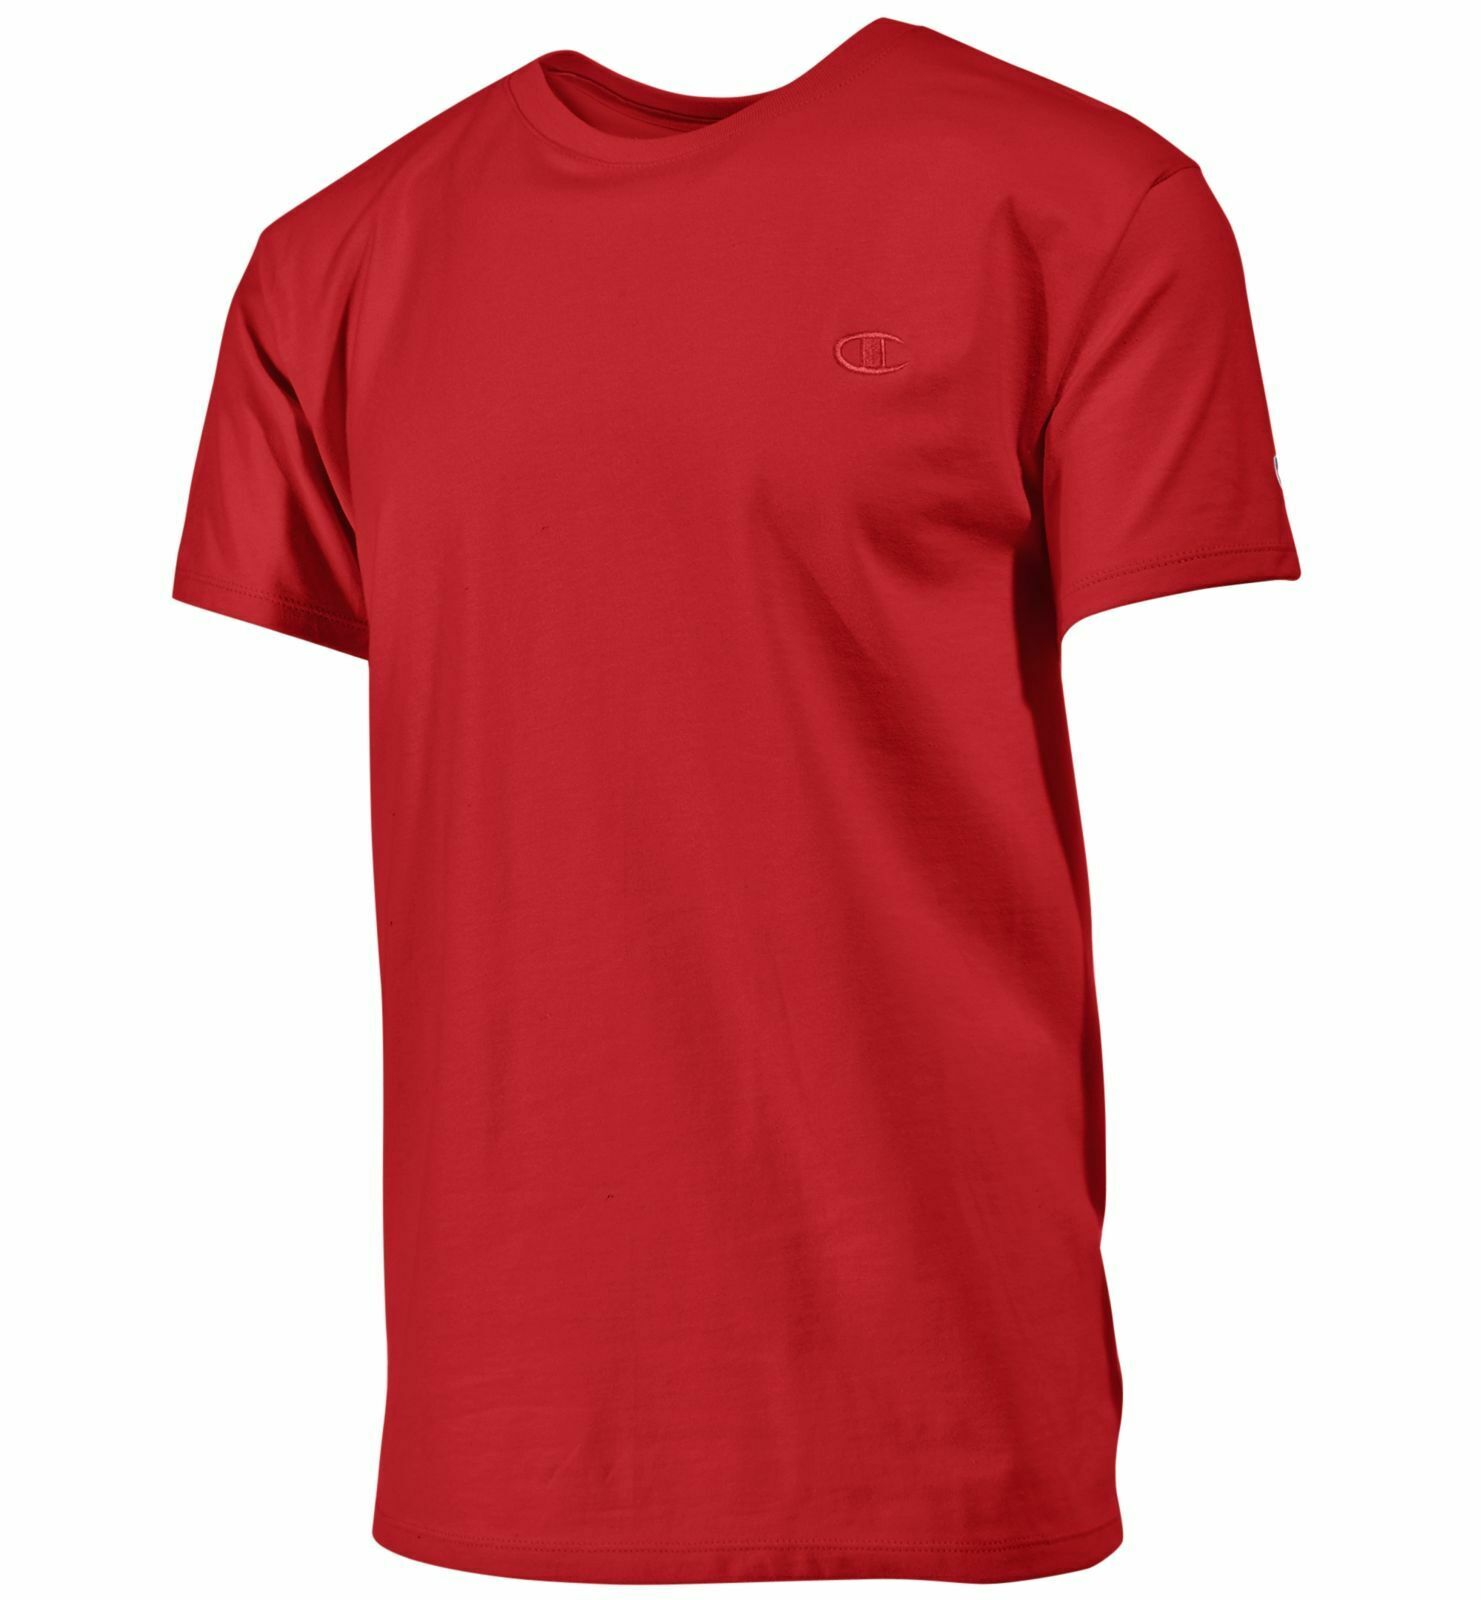 101be5eaf525 2 Champion Men's Classic Jersey Tee Shirts T0223 M Scarlet for sale online  | eBay